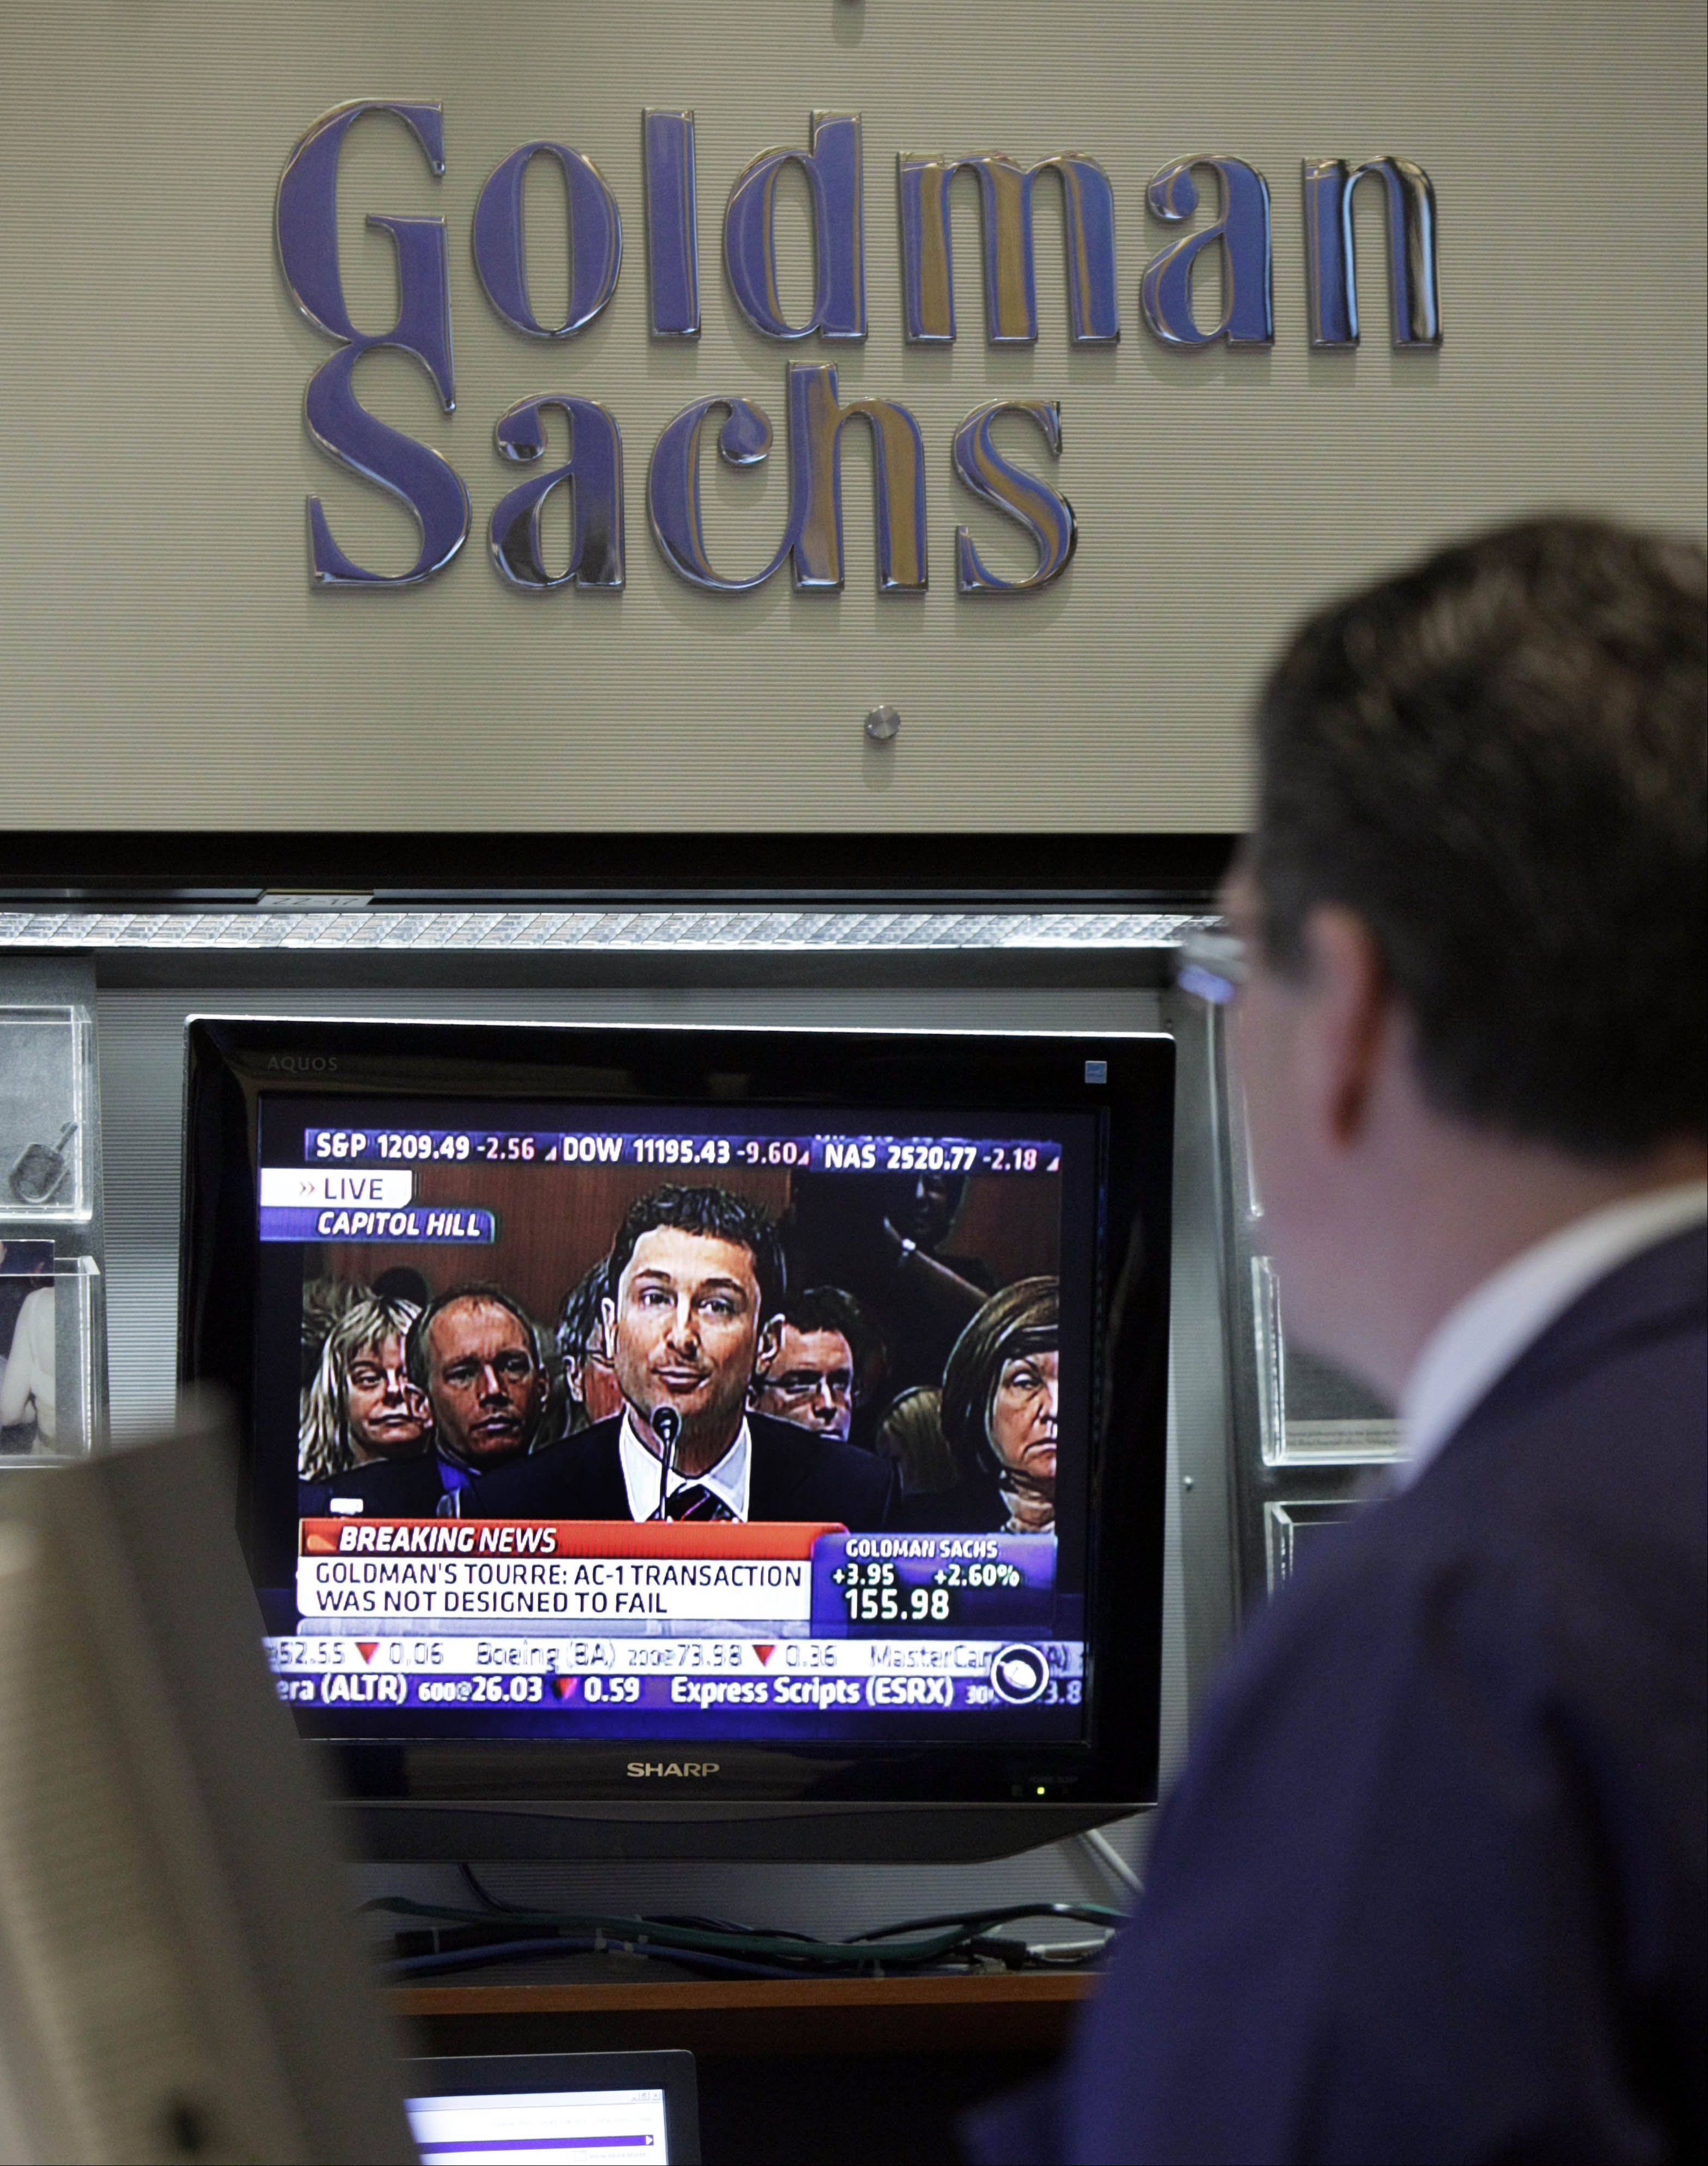 Fabrice Tourre, a 31-year-old trader at Goldman Sachs is watched on a television monitor in the Goldman Sachs booth on the floor of the New York Stock Exchange Tuesday, April 27, 2010. Tourre is testifying before a Senate panel investigating Goldman's role in the financial crisis and the Securities and Exchange Commission fraud suit against it and him.